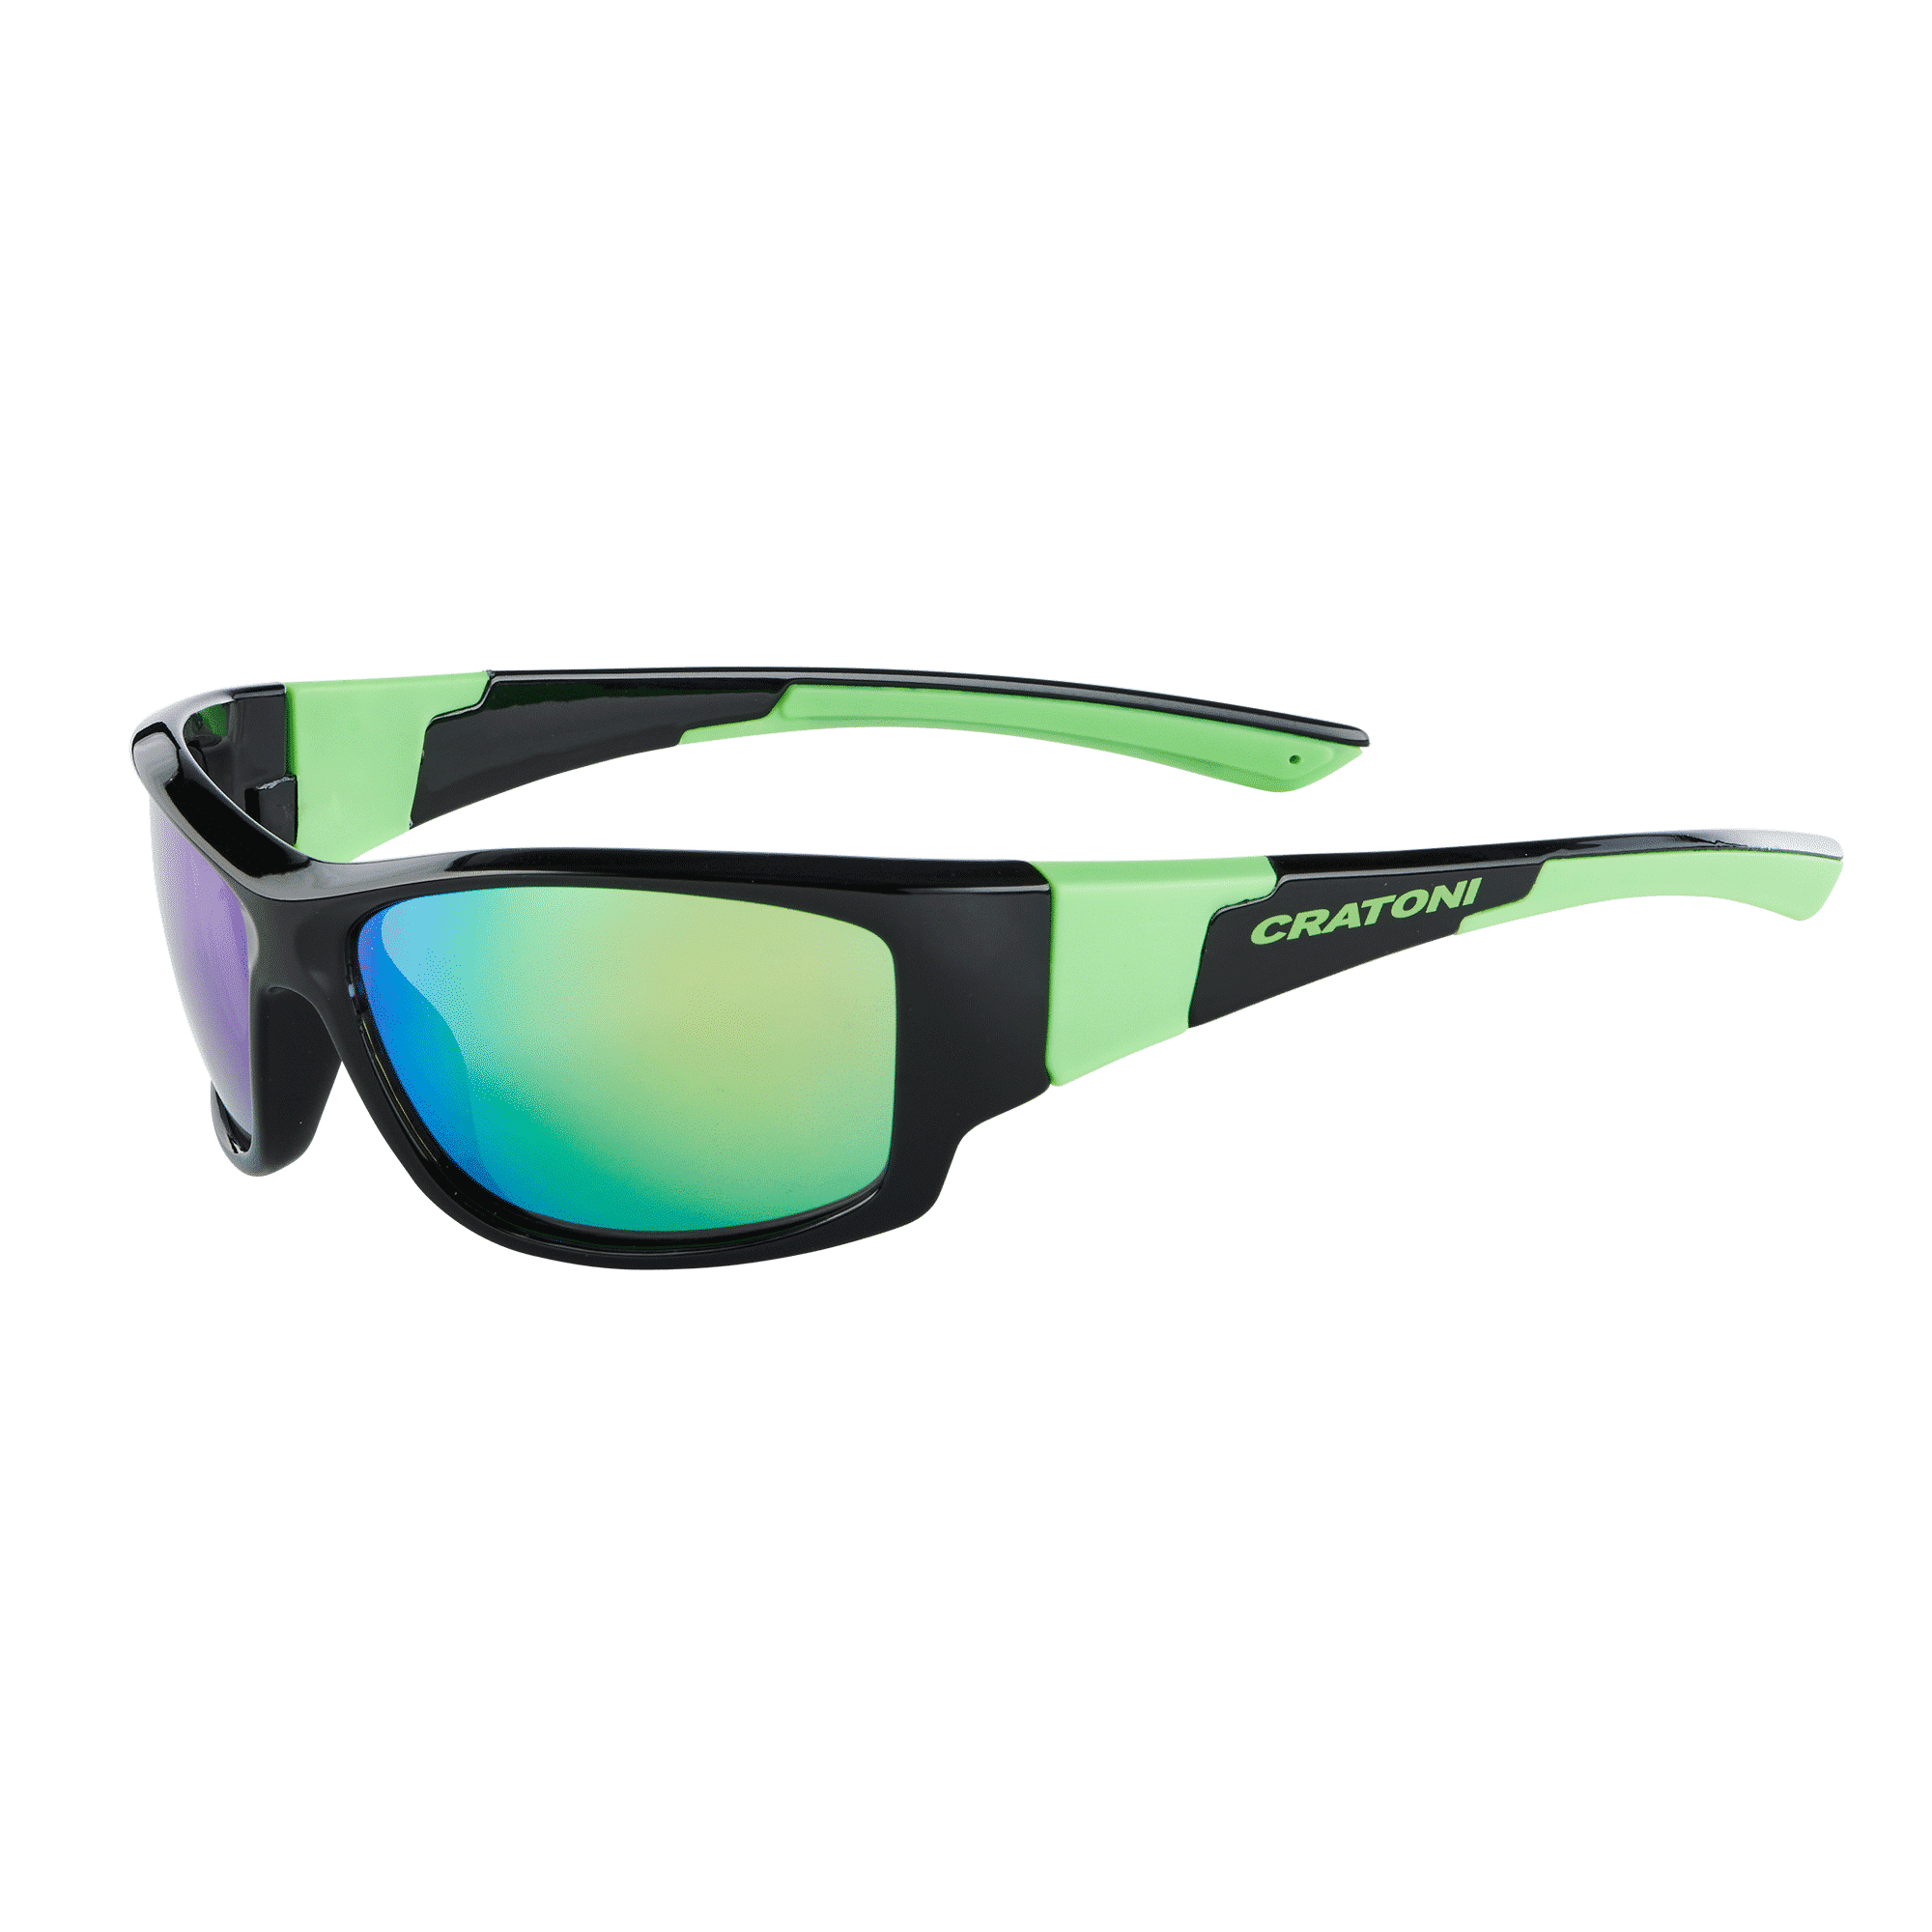 Cratoni C-Spin black-neongreen-glossy